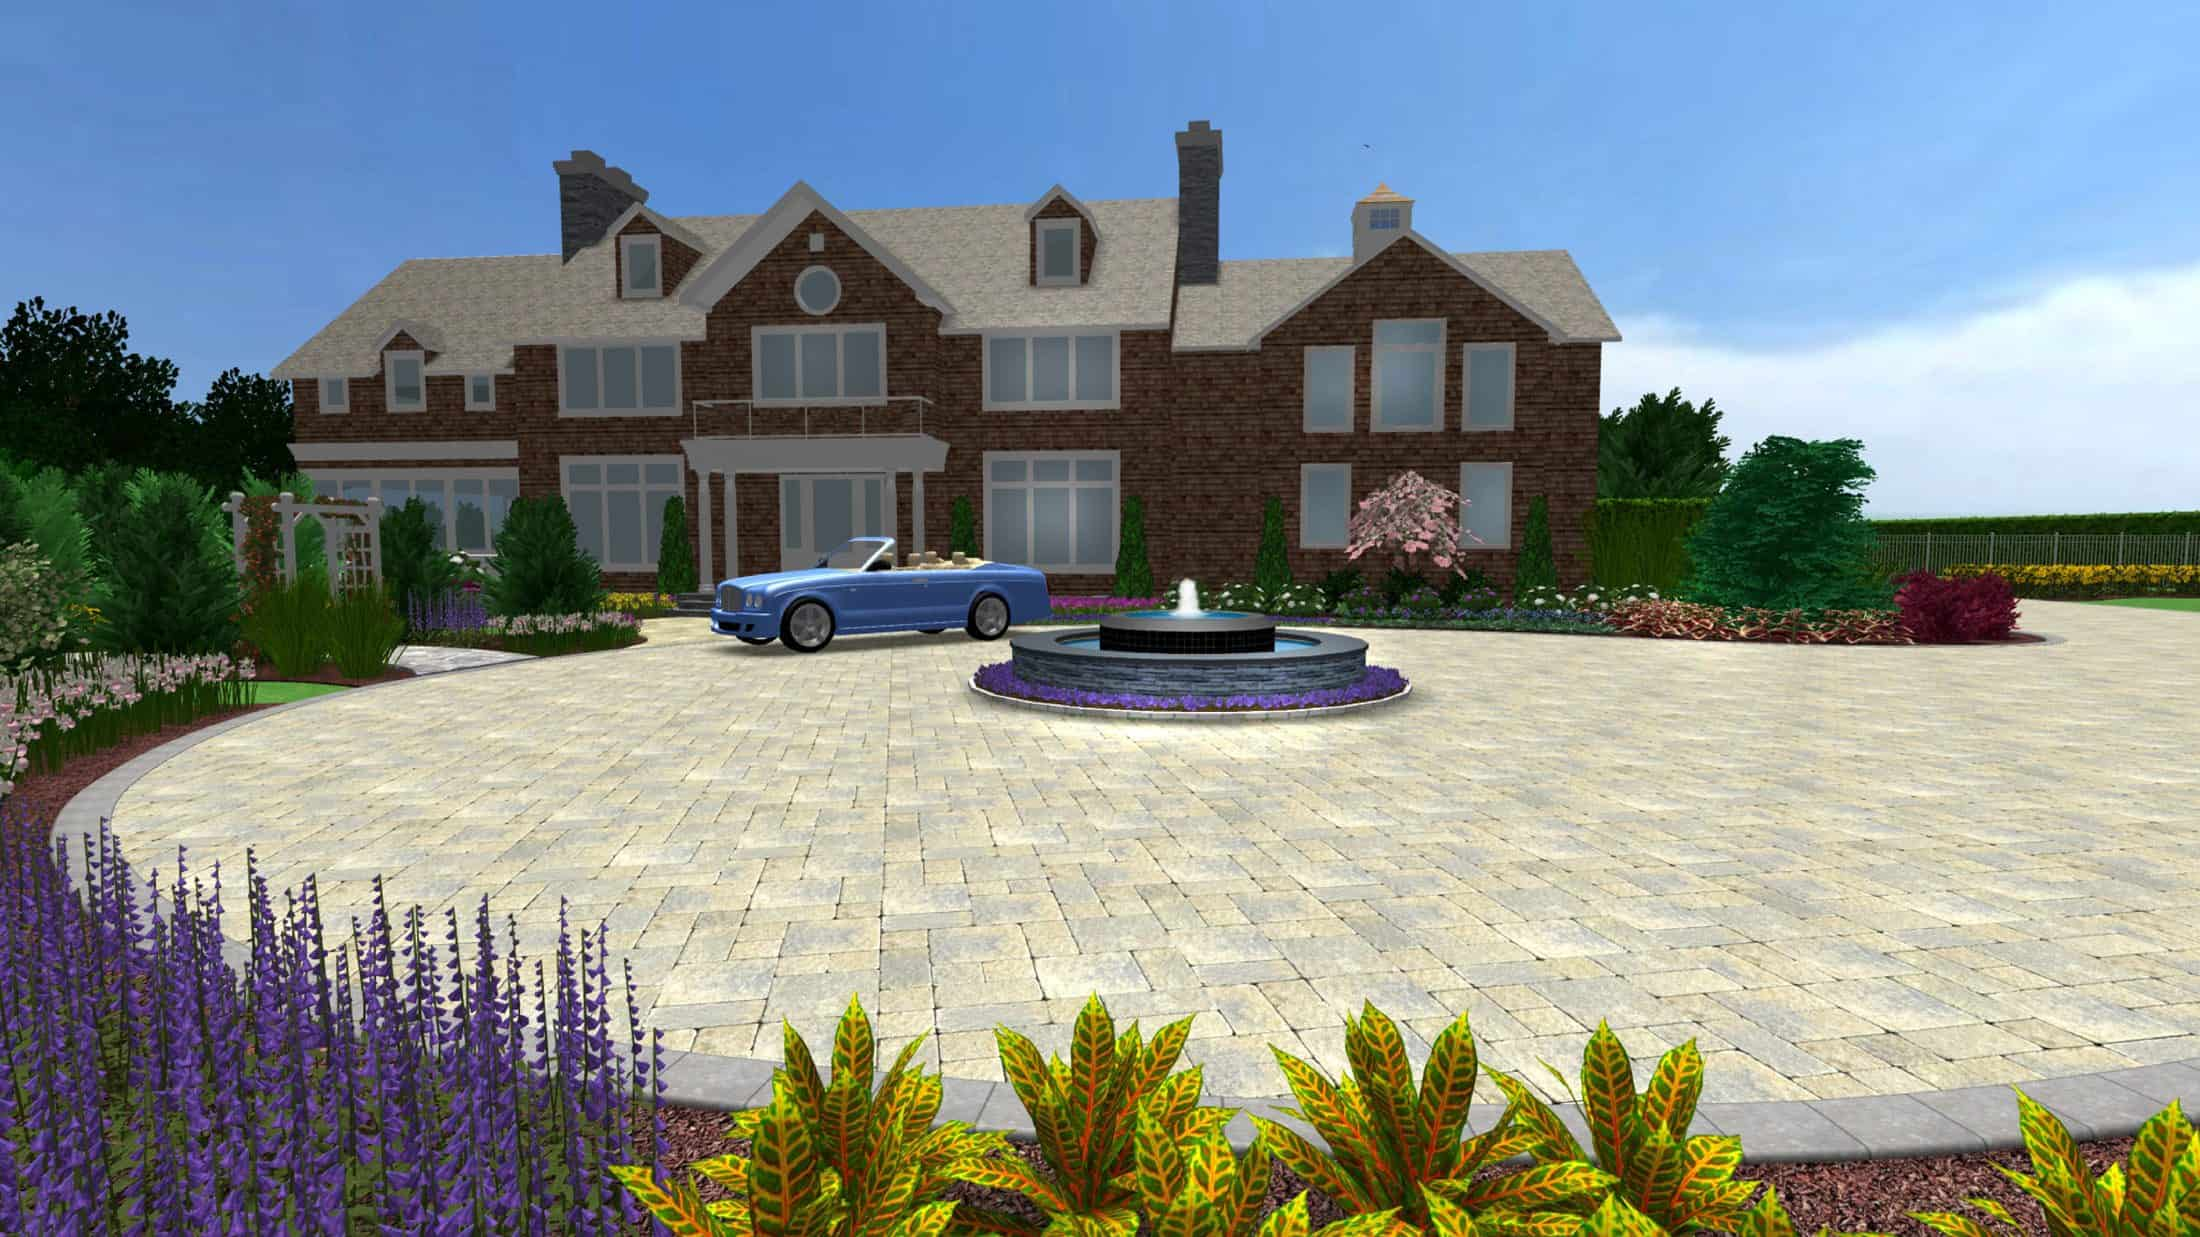 Landscape Design - Plantings - Long Island, NY